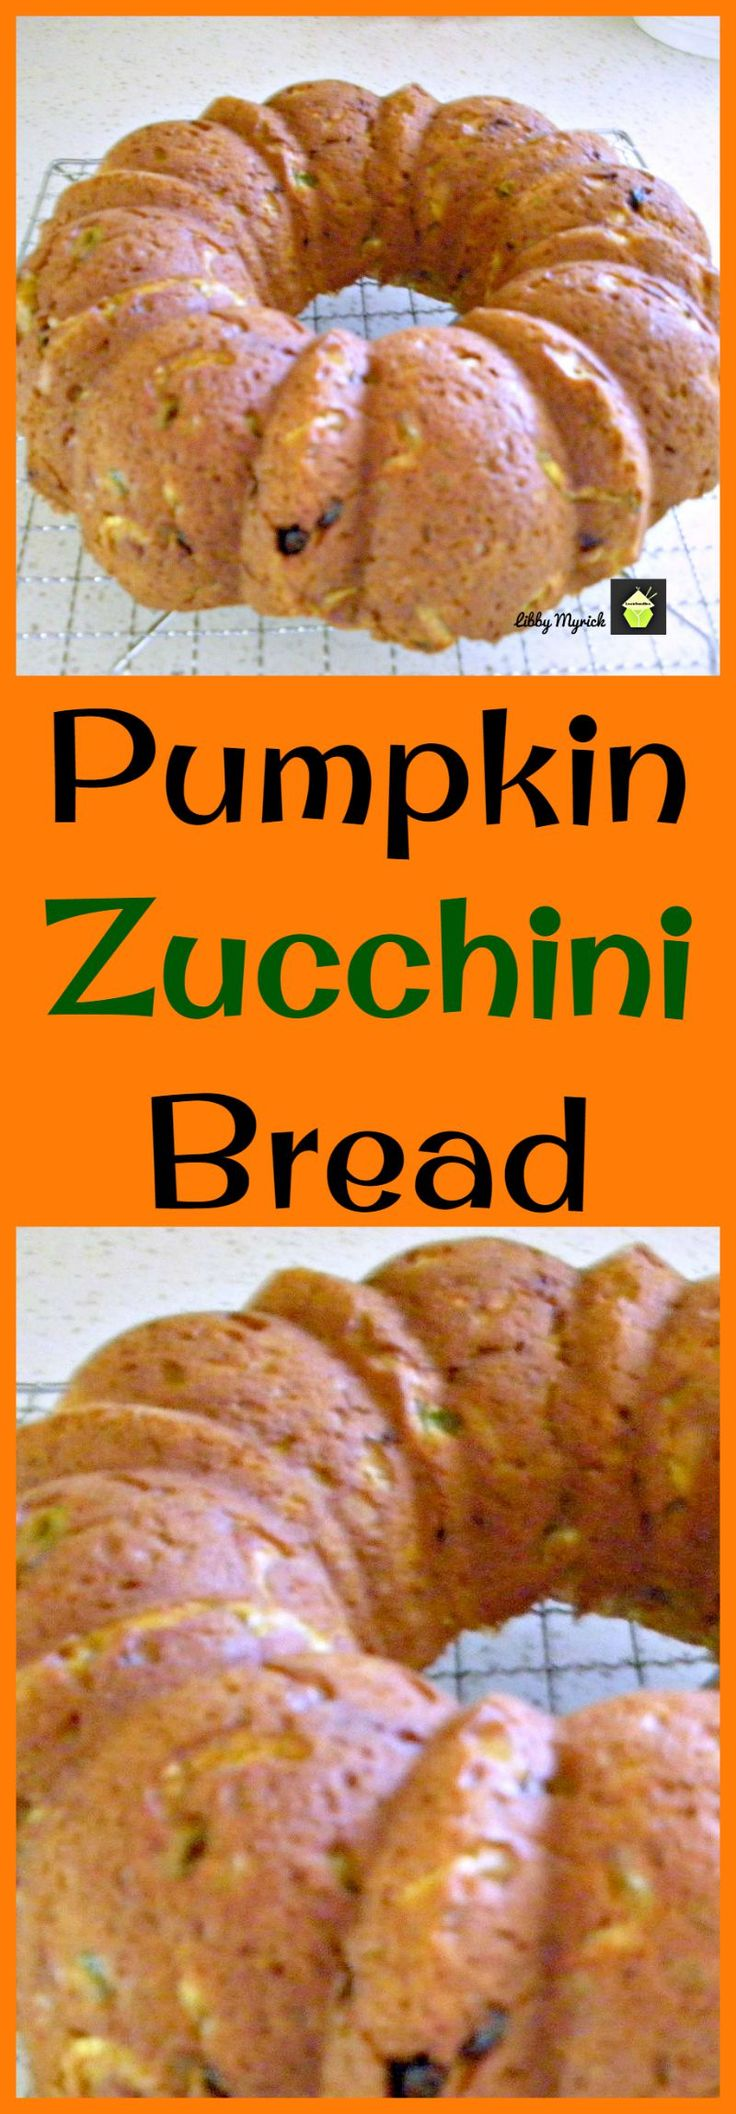 Pumpkin Zucchini Bread, An easy recipe with fabulous aromas and great tasting…